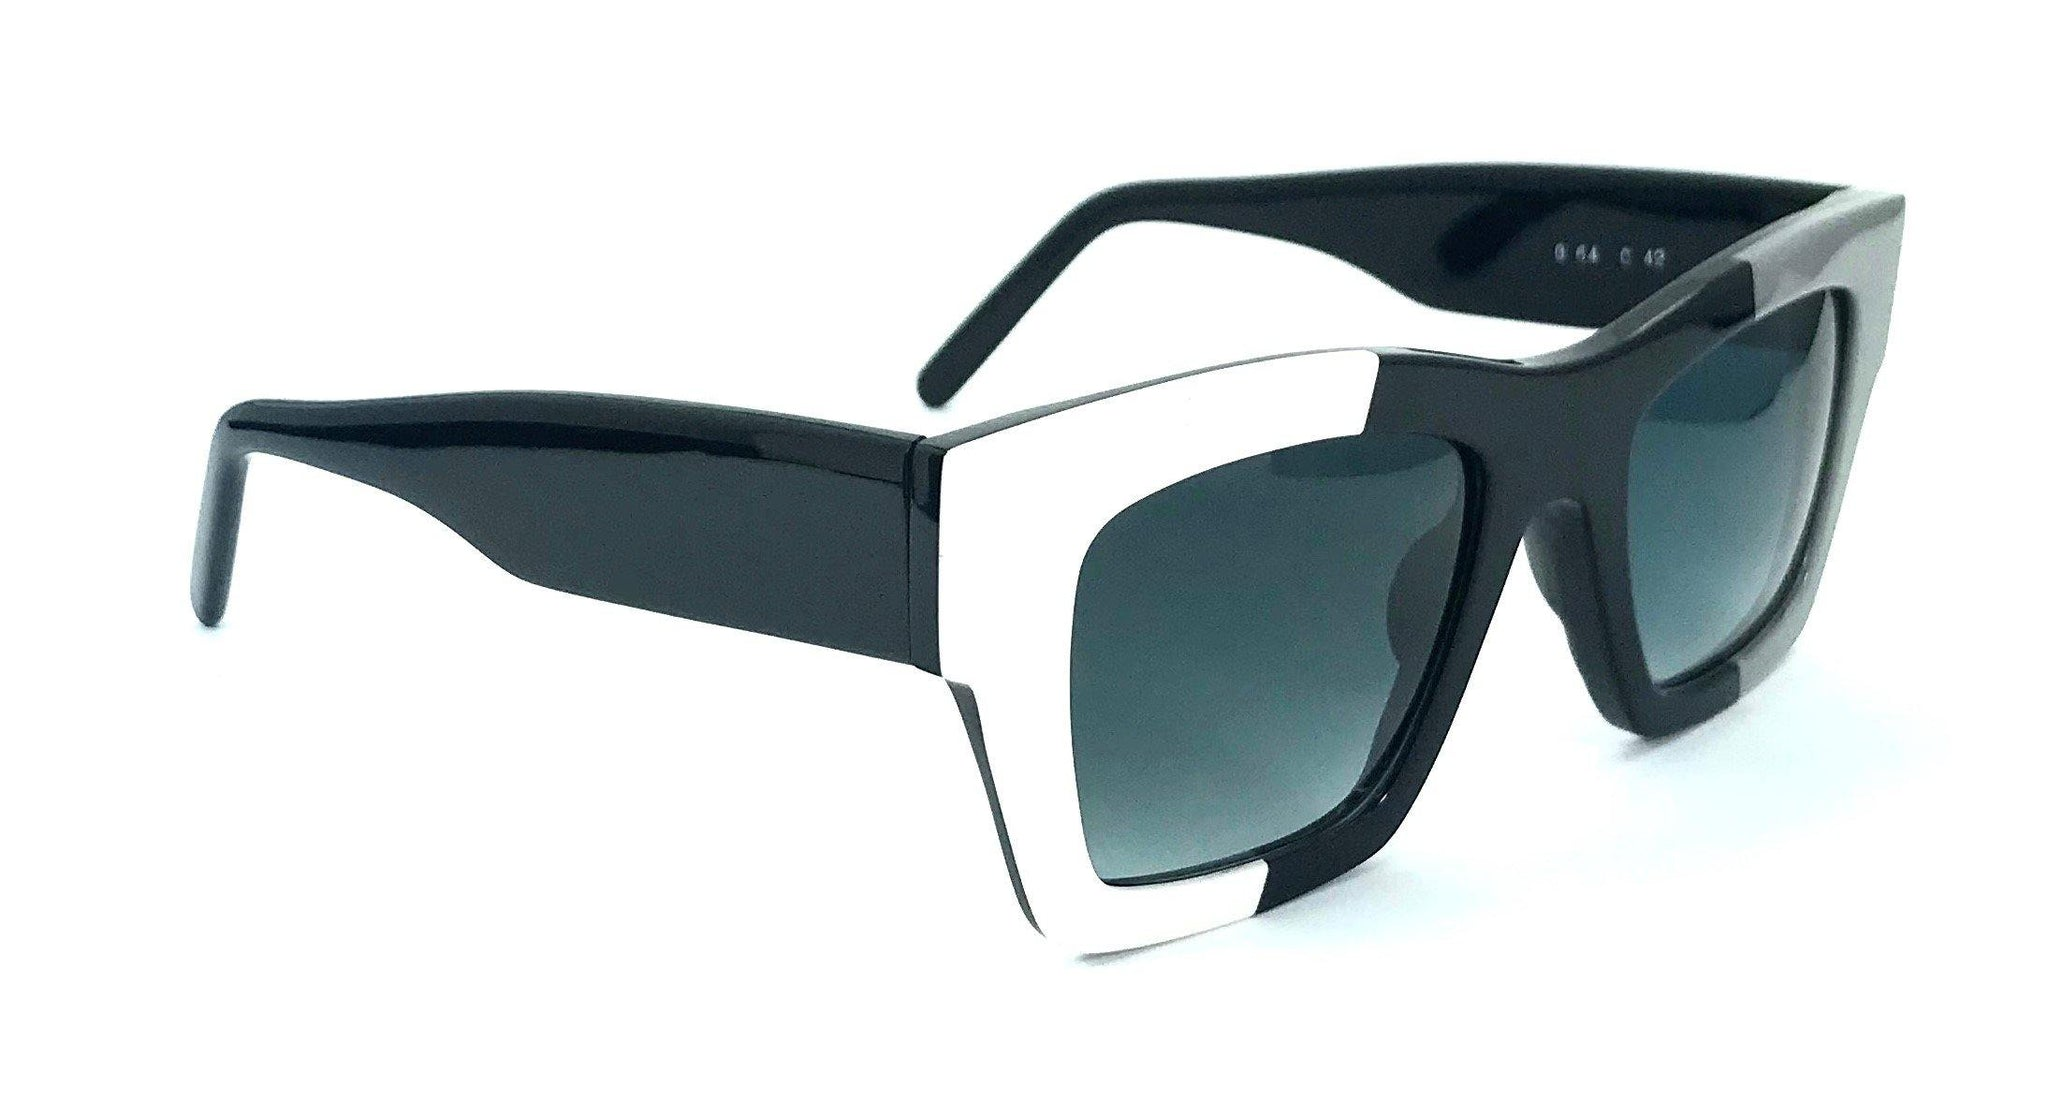 Gustavo Eyewear - G64 - WHITE - BLACK - GRAY